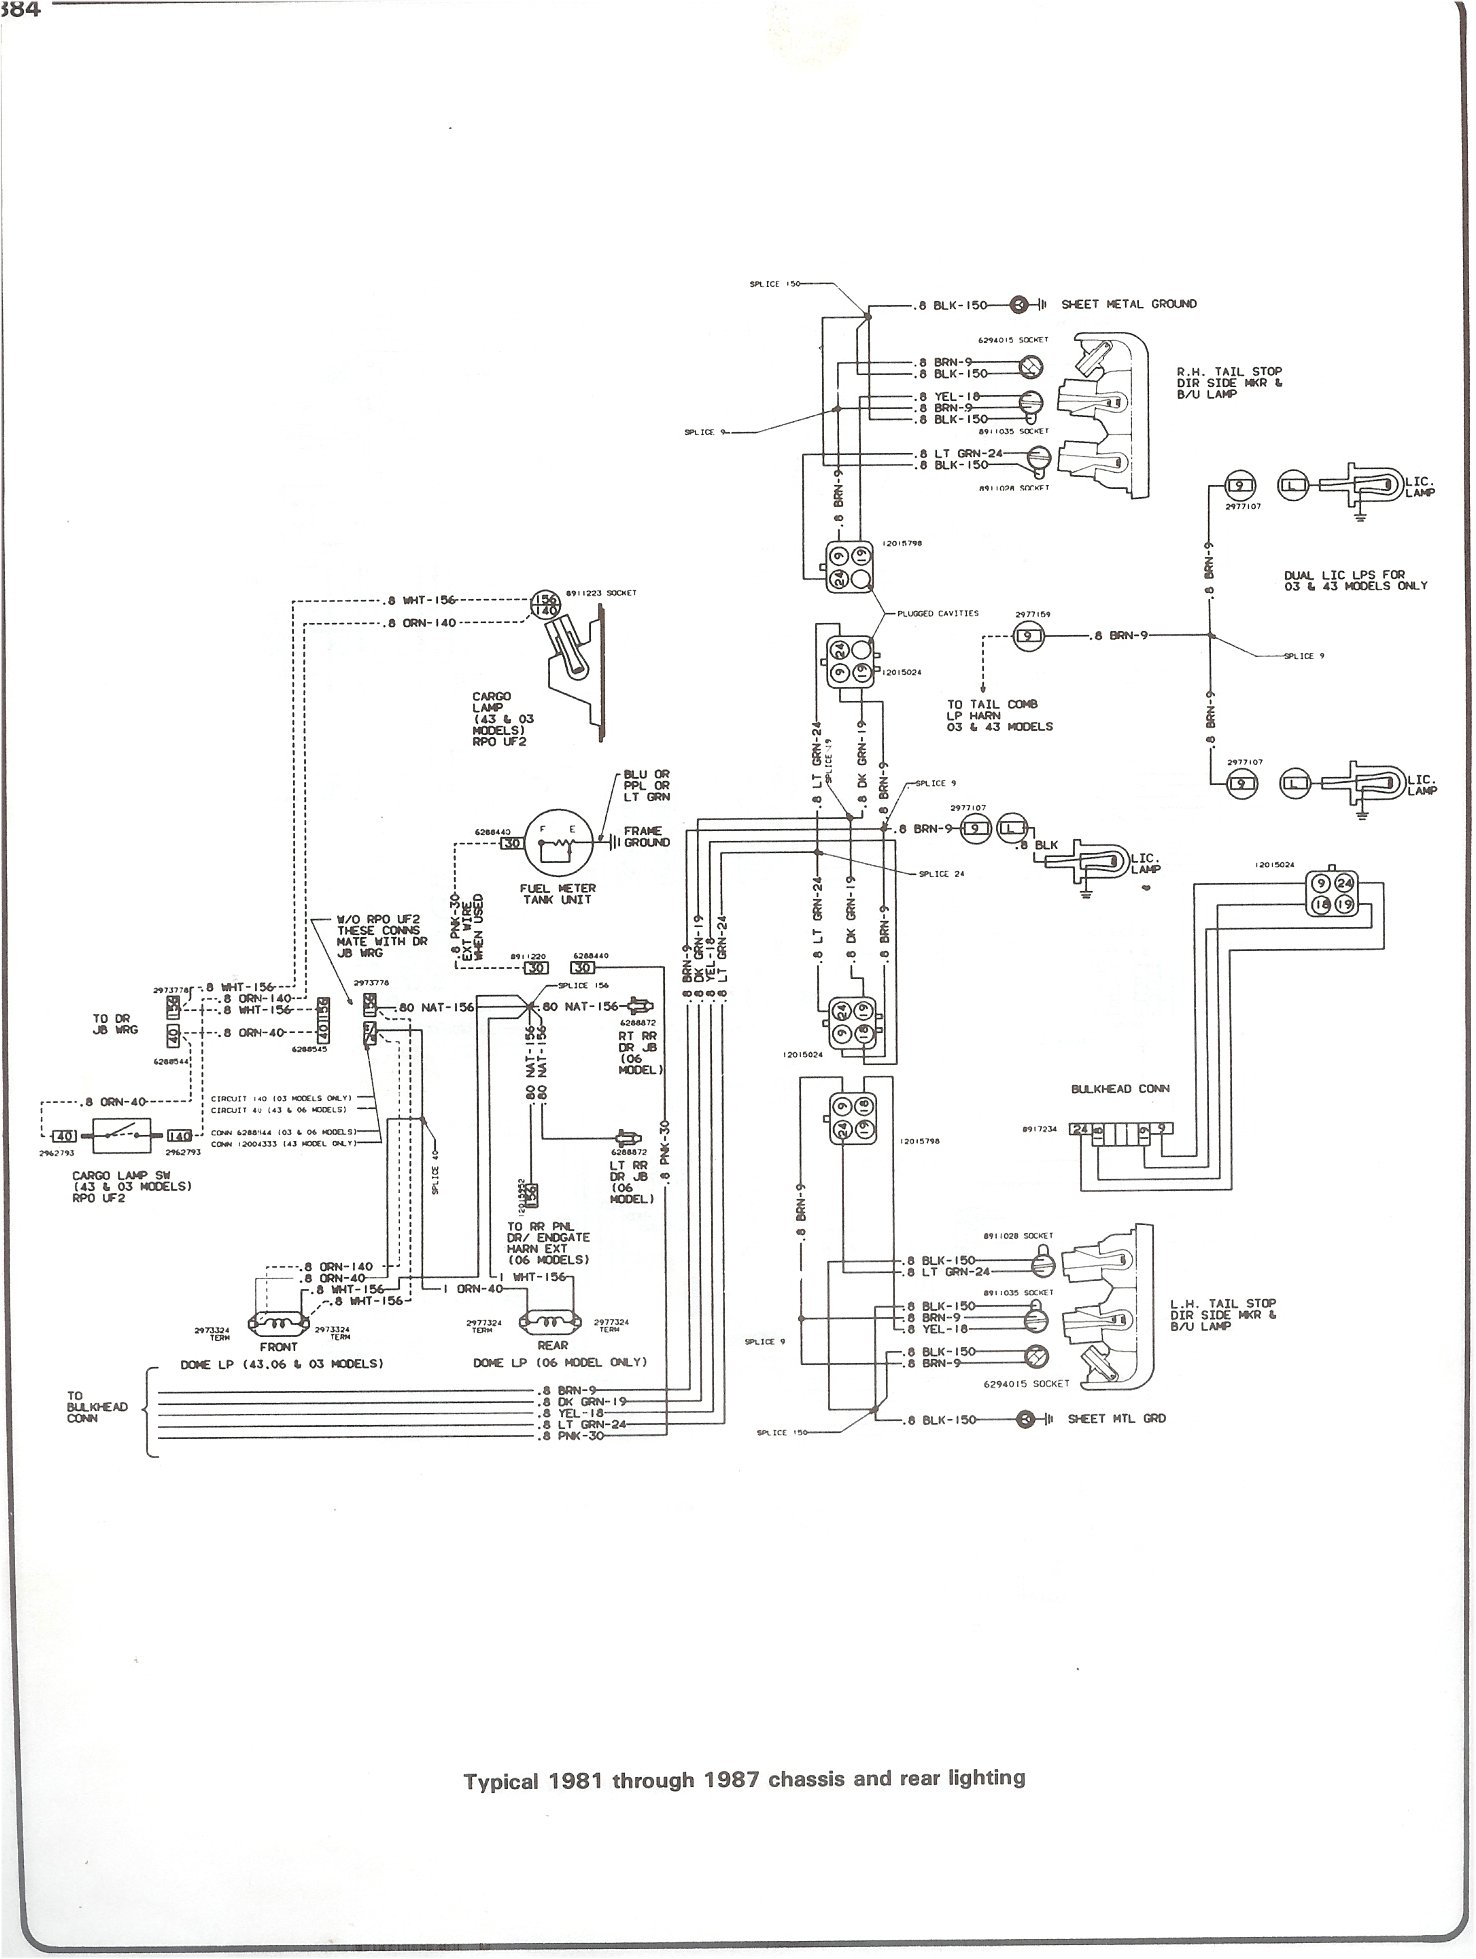 complete 73 87 wiring diagrams on 1980 Camaro Ignition Wiring Diagram for 81 87 chassis and rear lighting at 83 Camaro Wiring